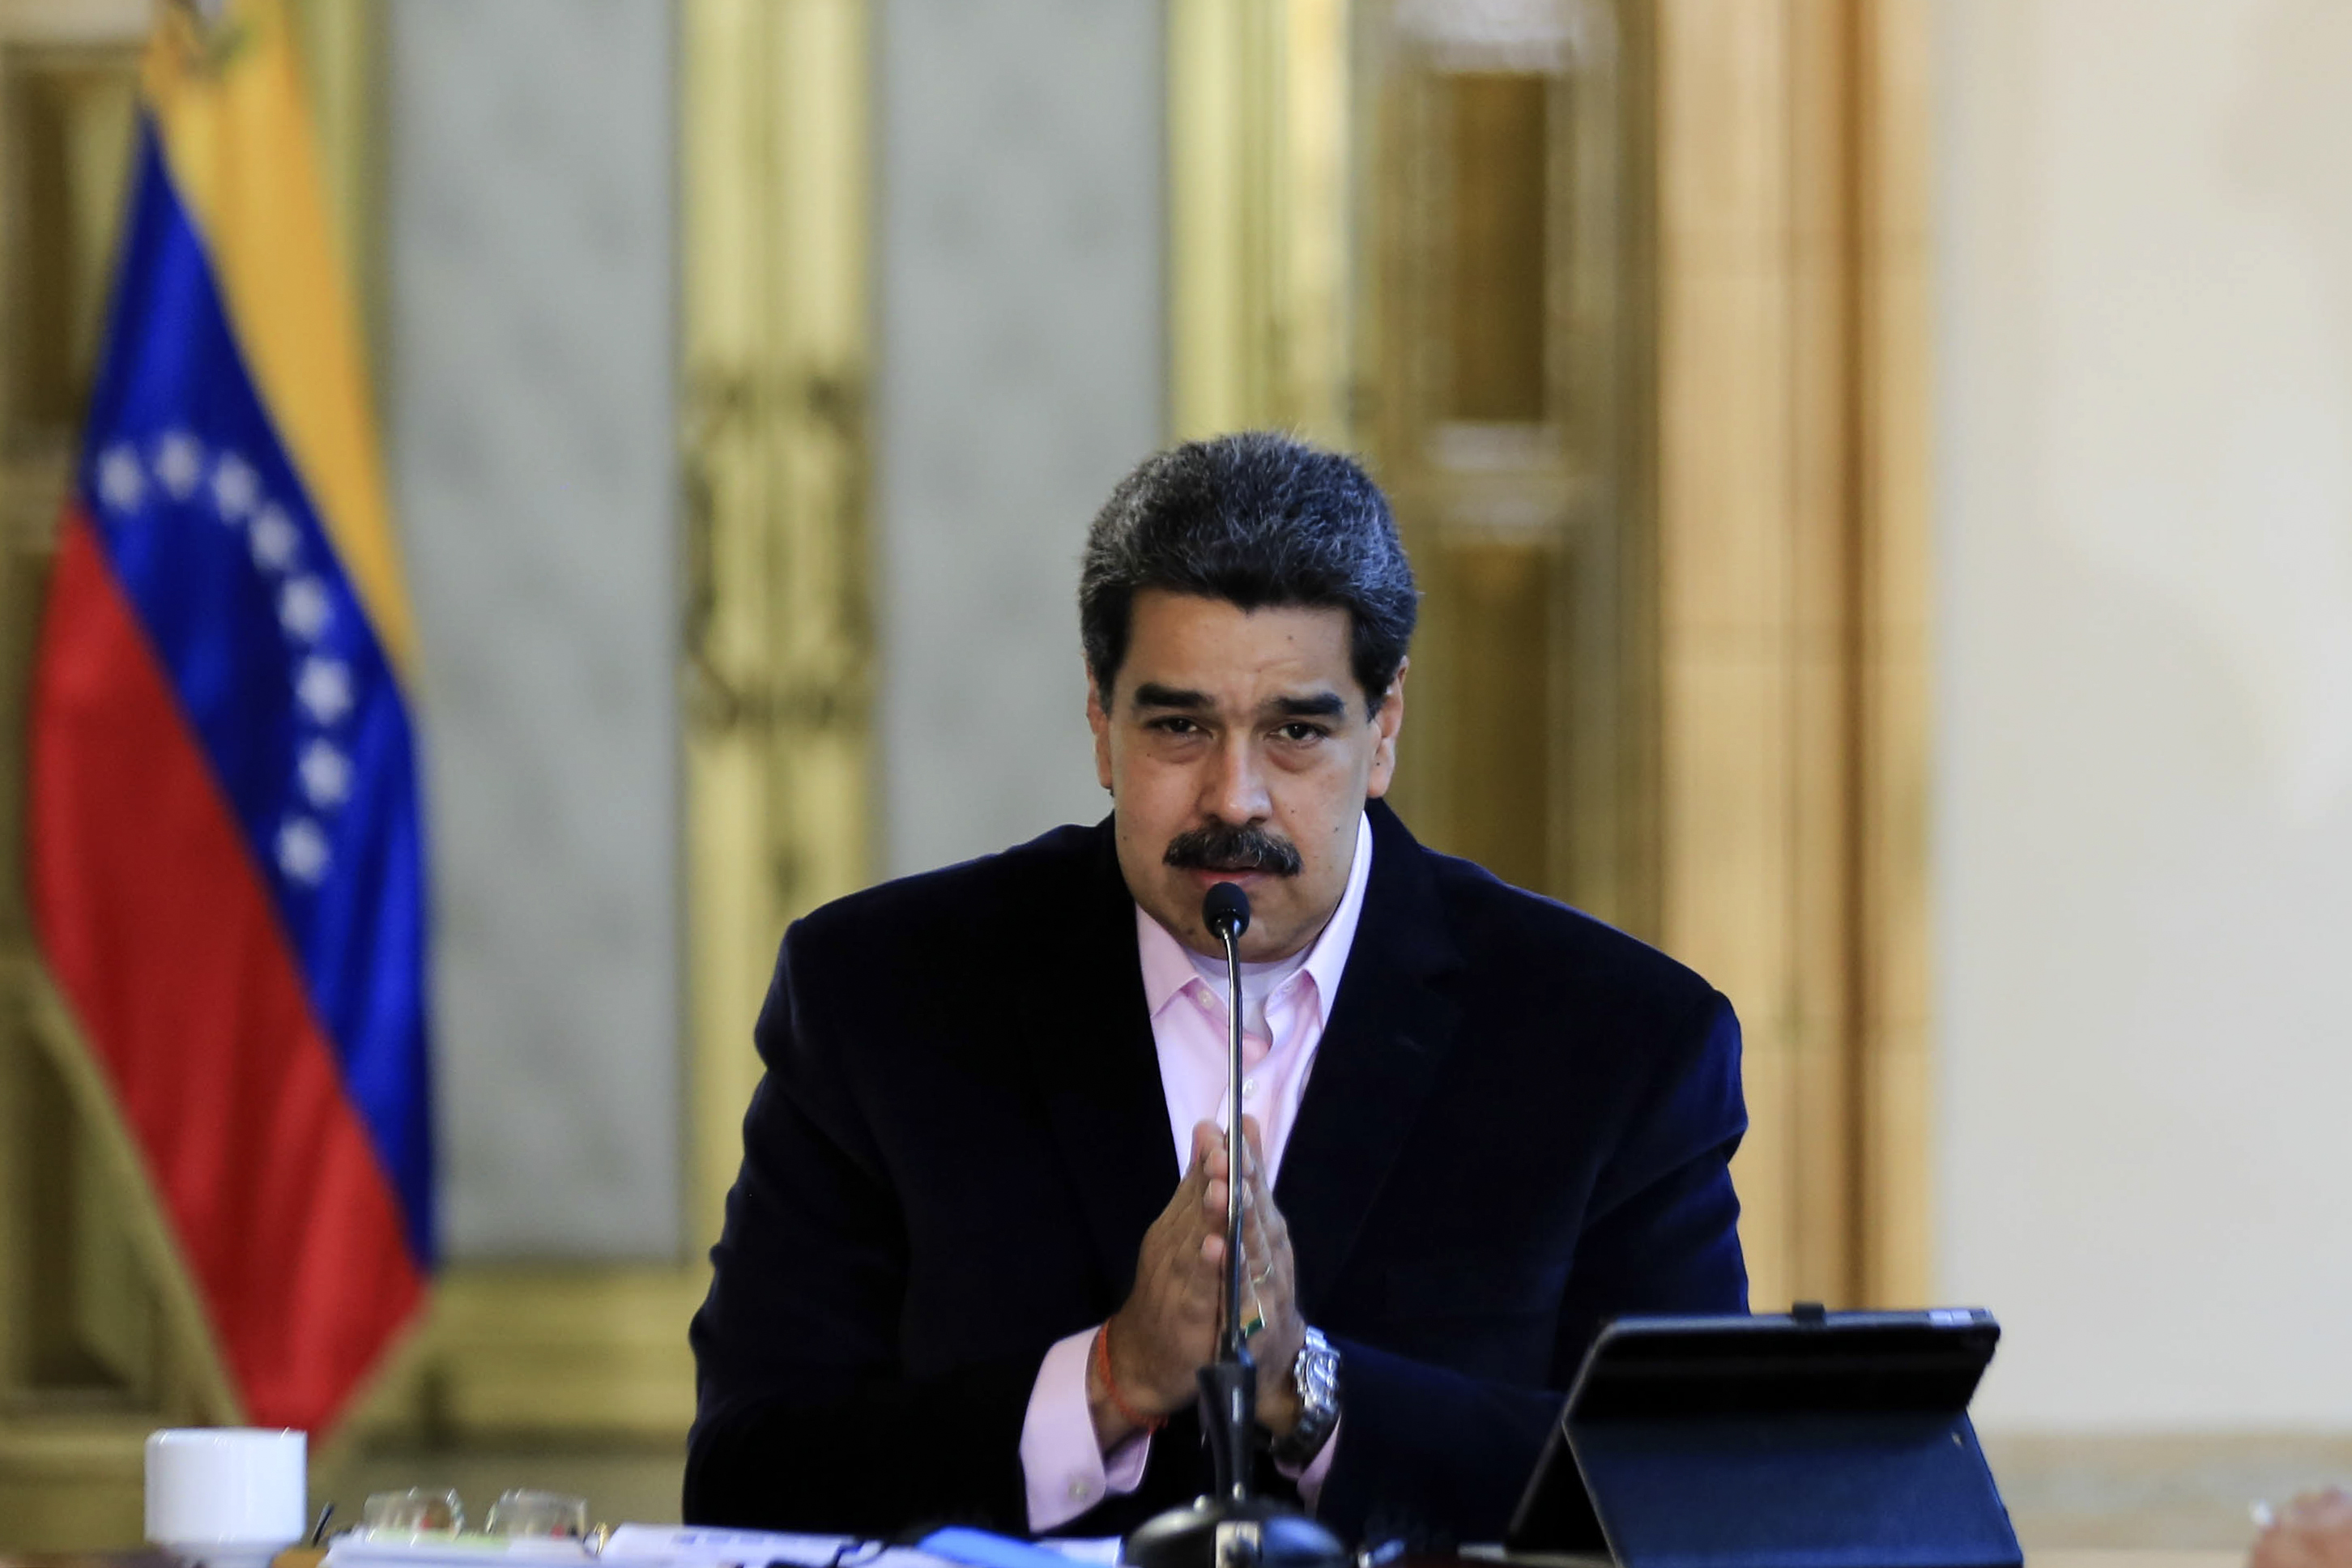 A Defiant Maduro Threatens 'Cowboy' Trump After Drug Charge